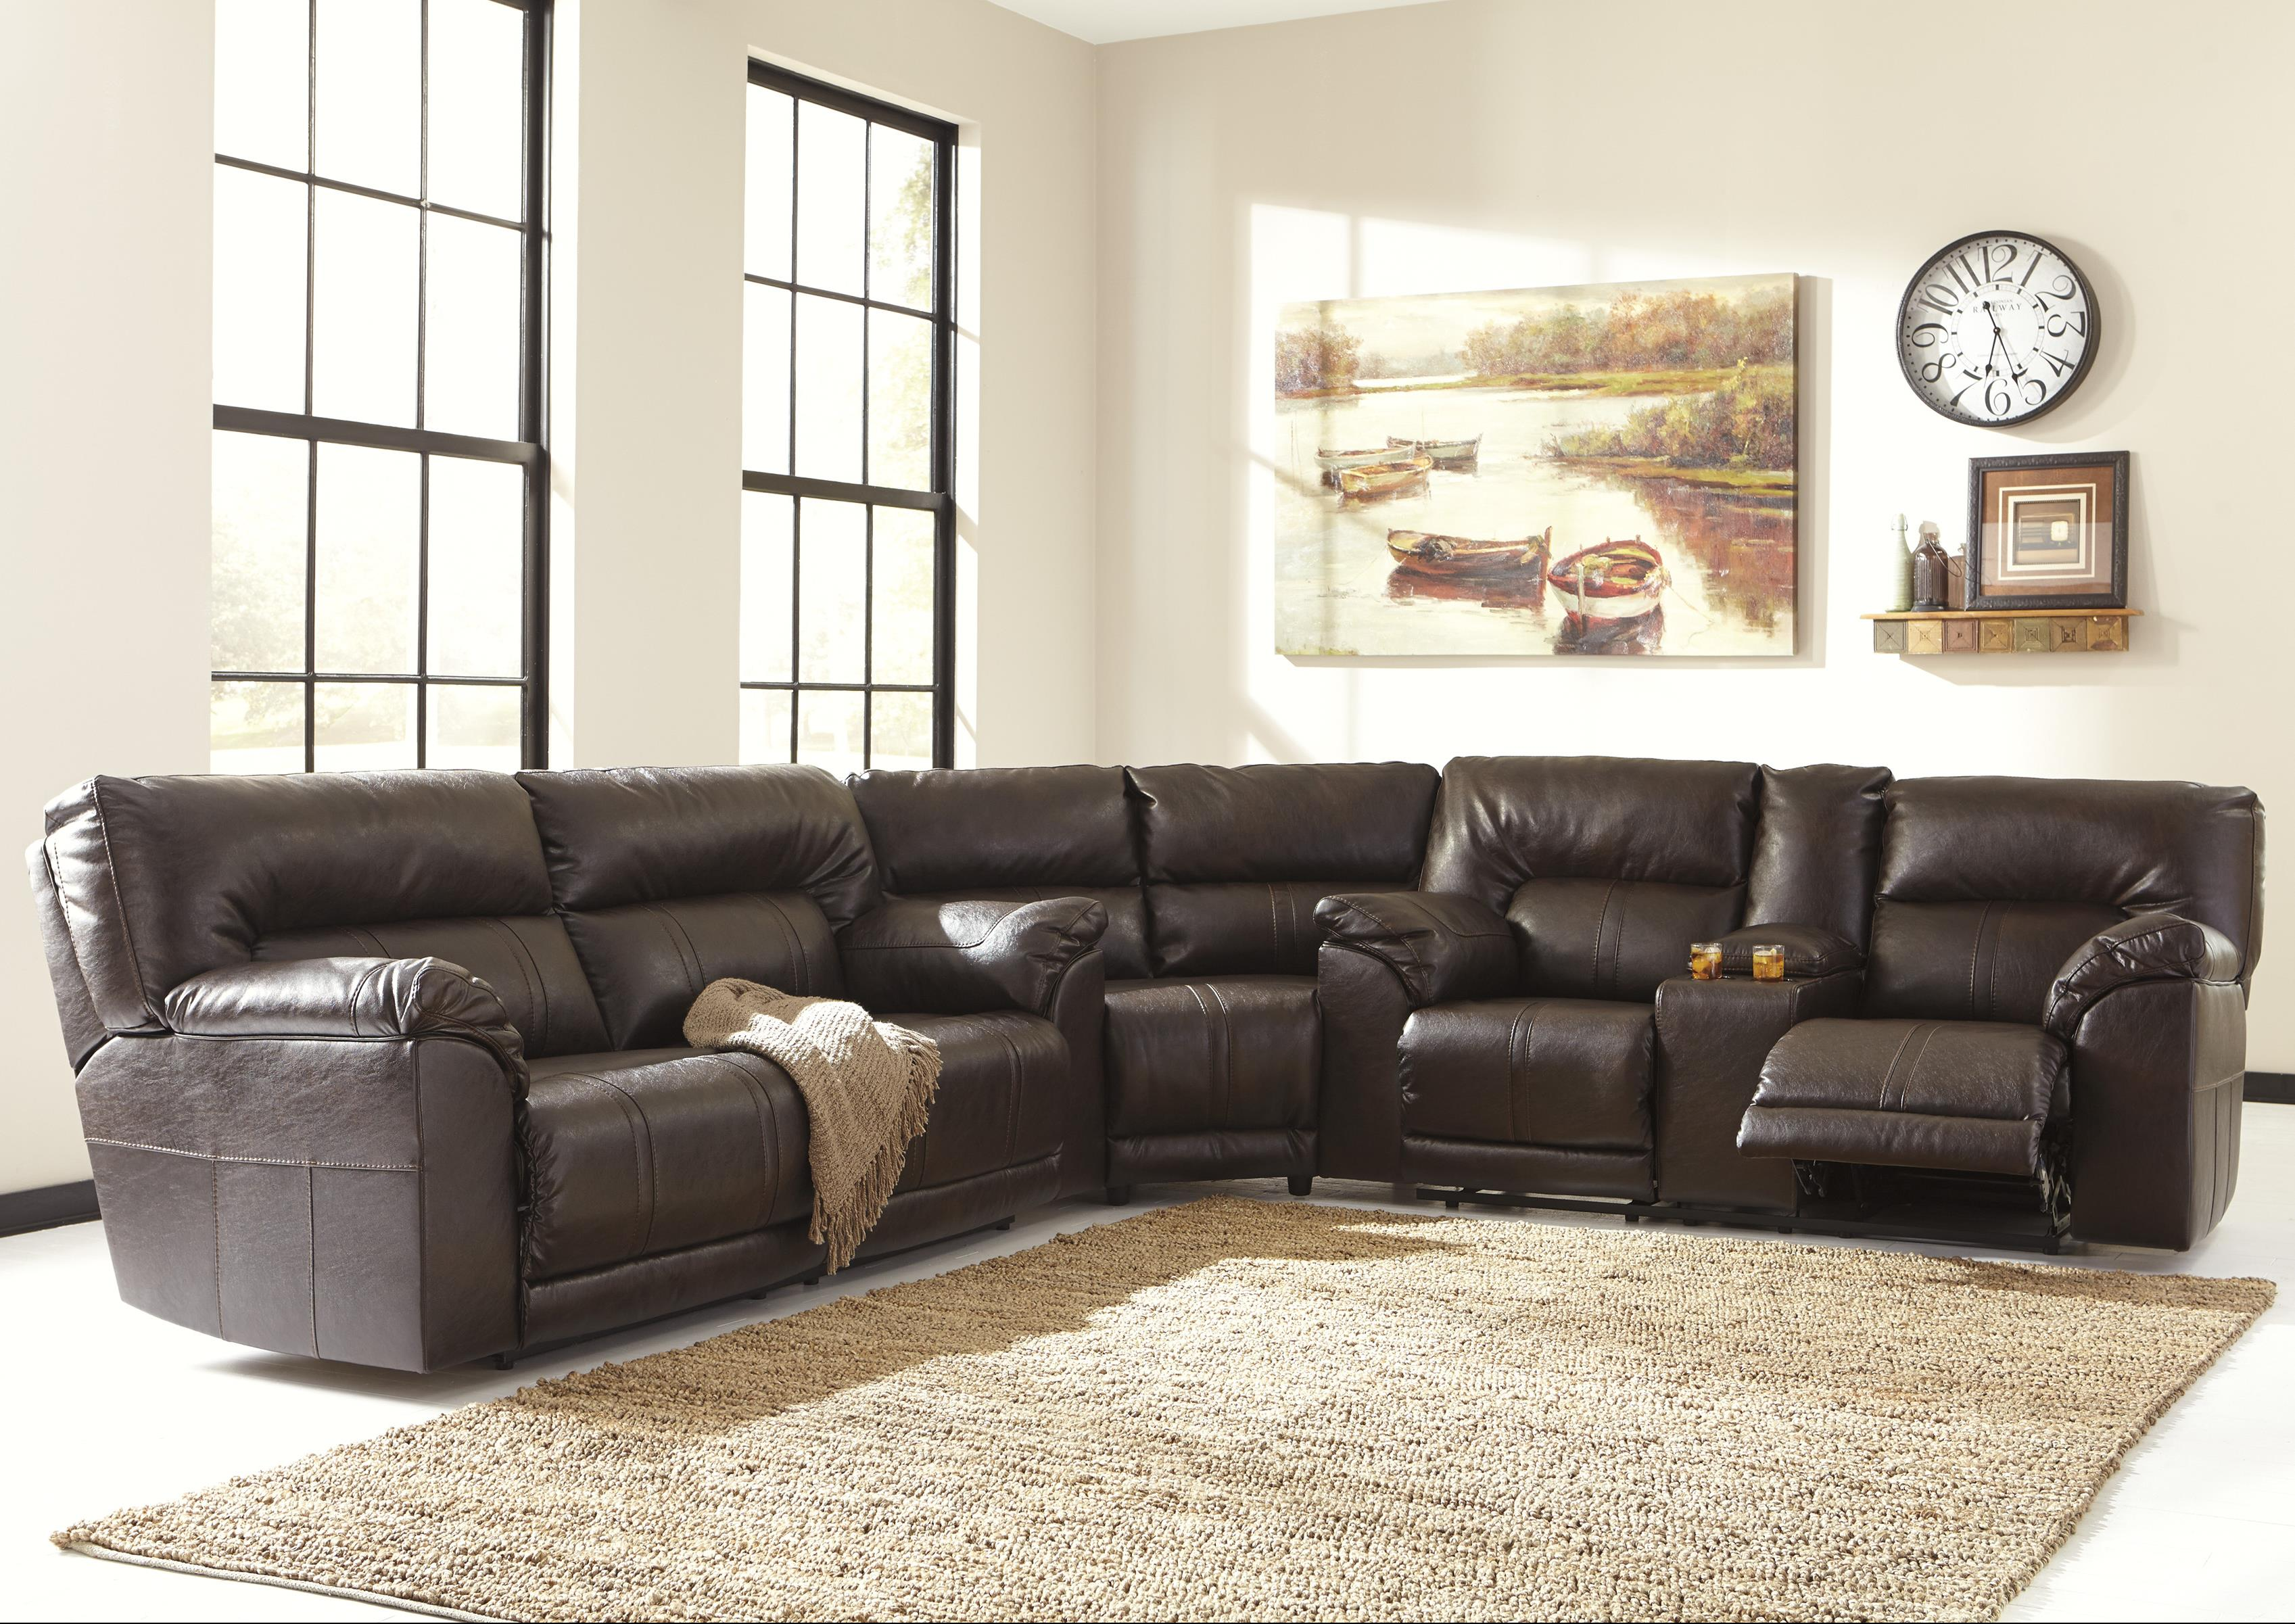 of go leather where buy traditional living size couches sofas sectionals room clearance furniture sectional loveseat family sears ashley beautiful sofa in loveseats rooms to full sets